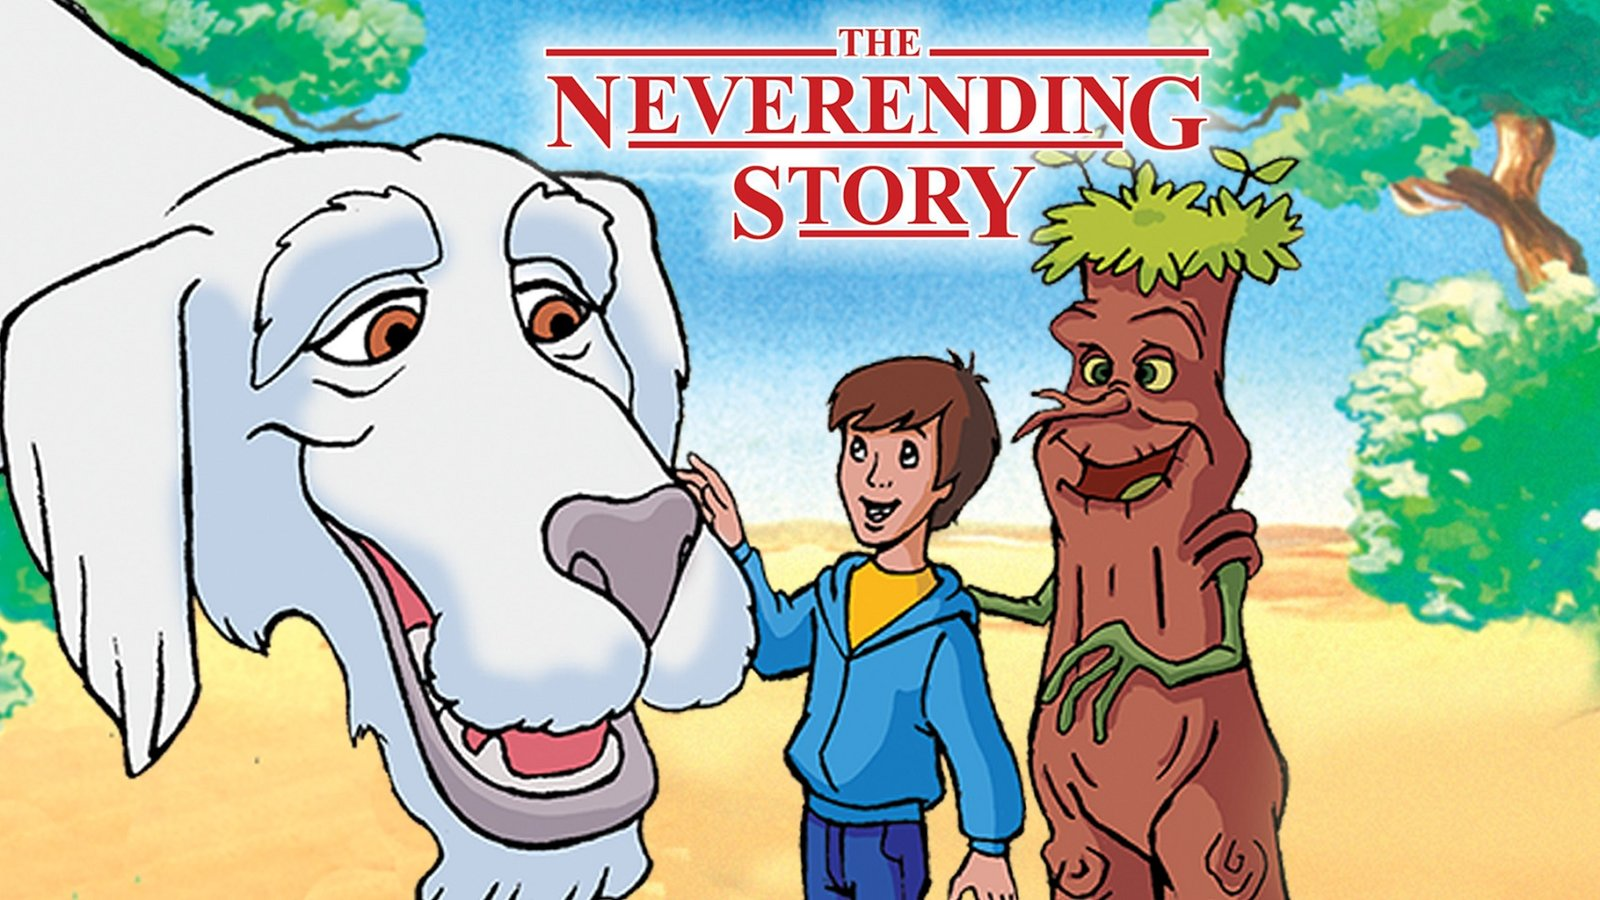 The Neverending Story